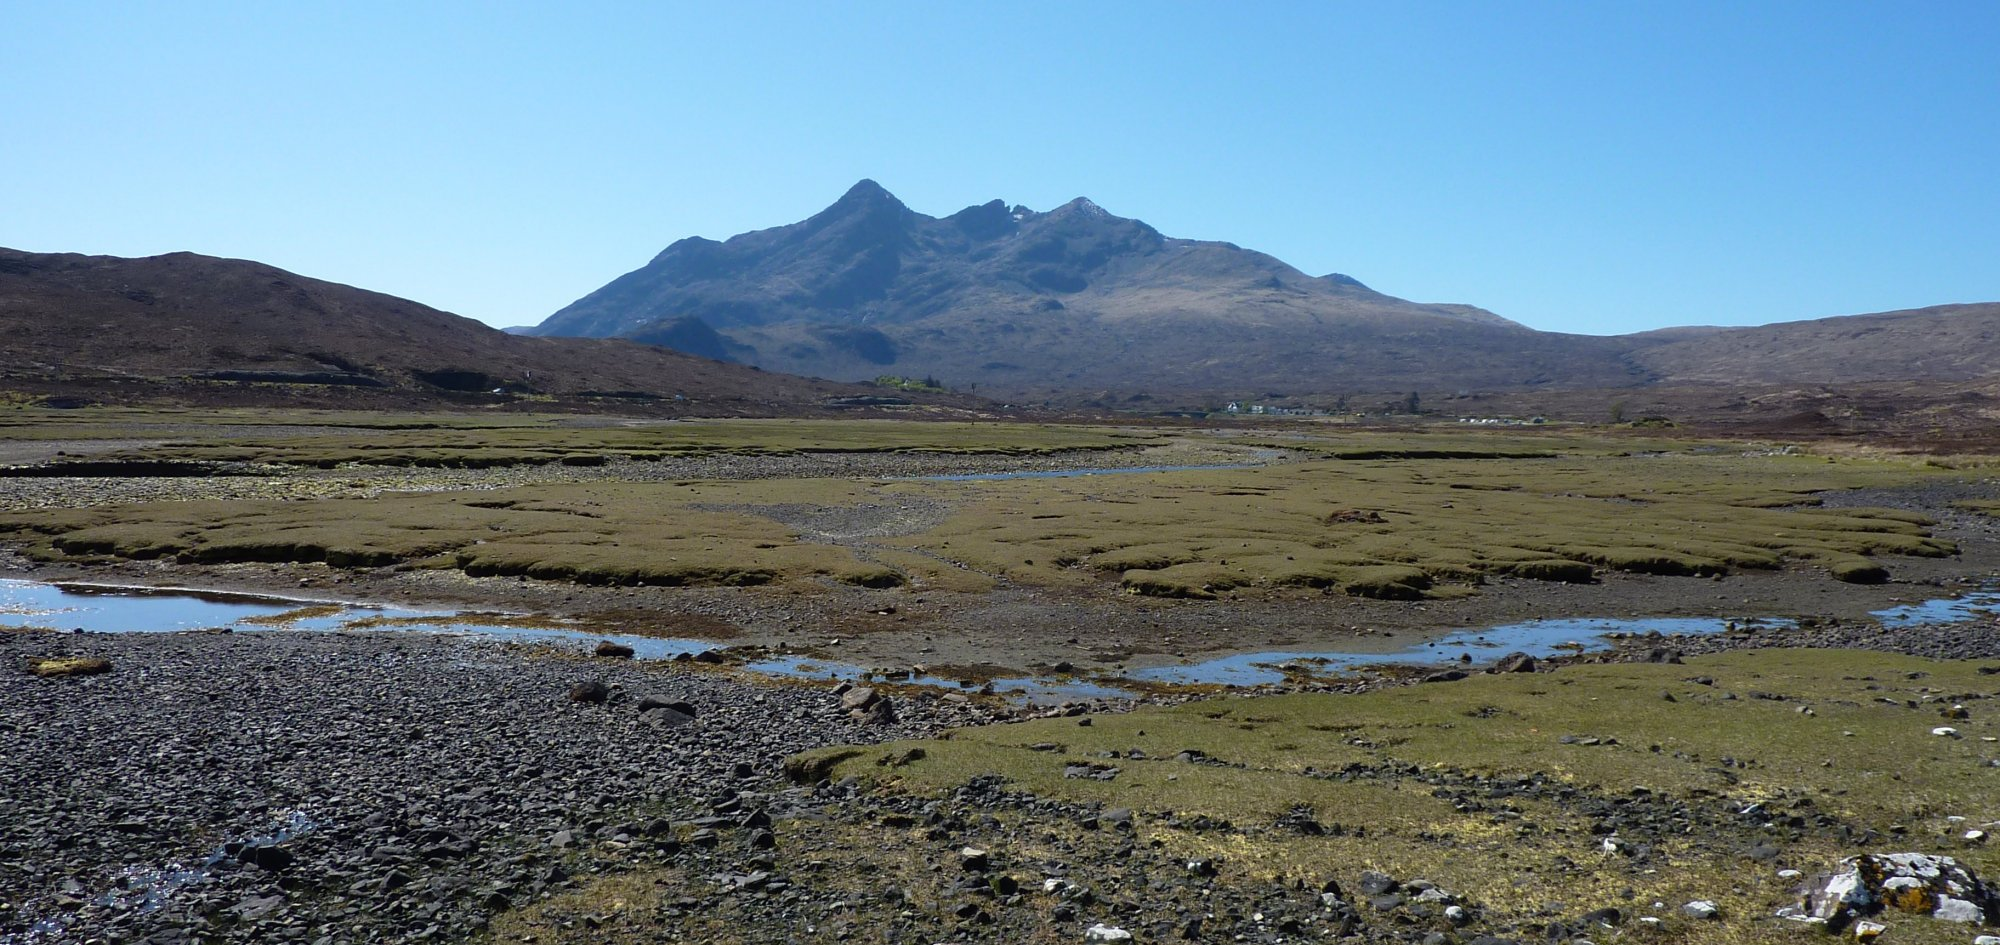 Crossing the salt marshes at the head of the Loch, with Cuillins in the background